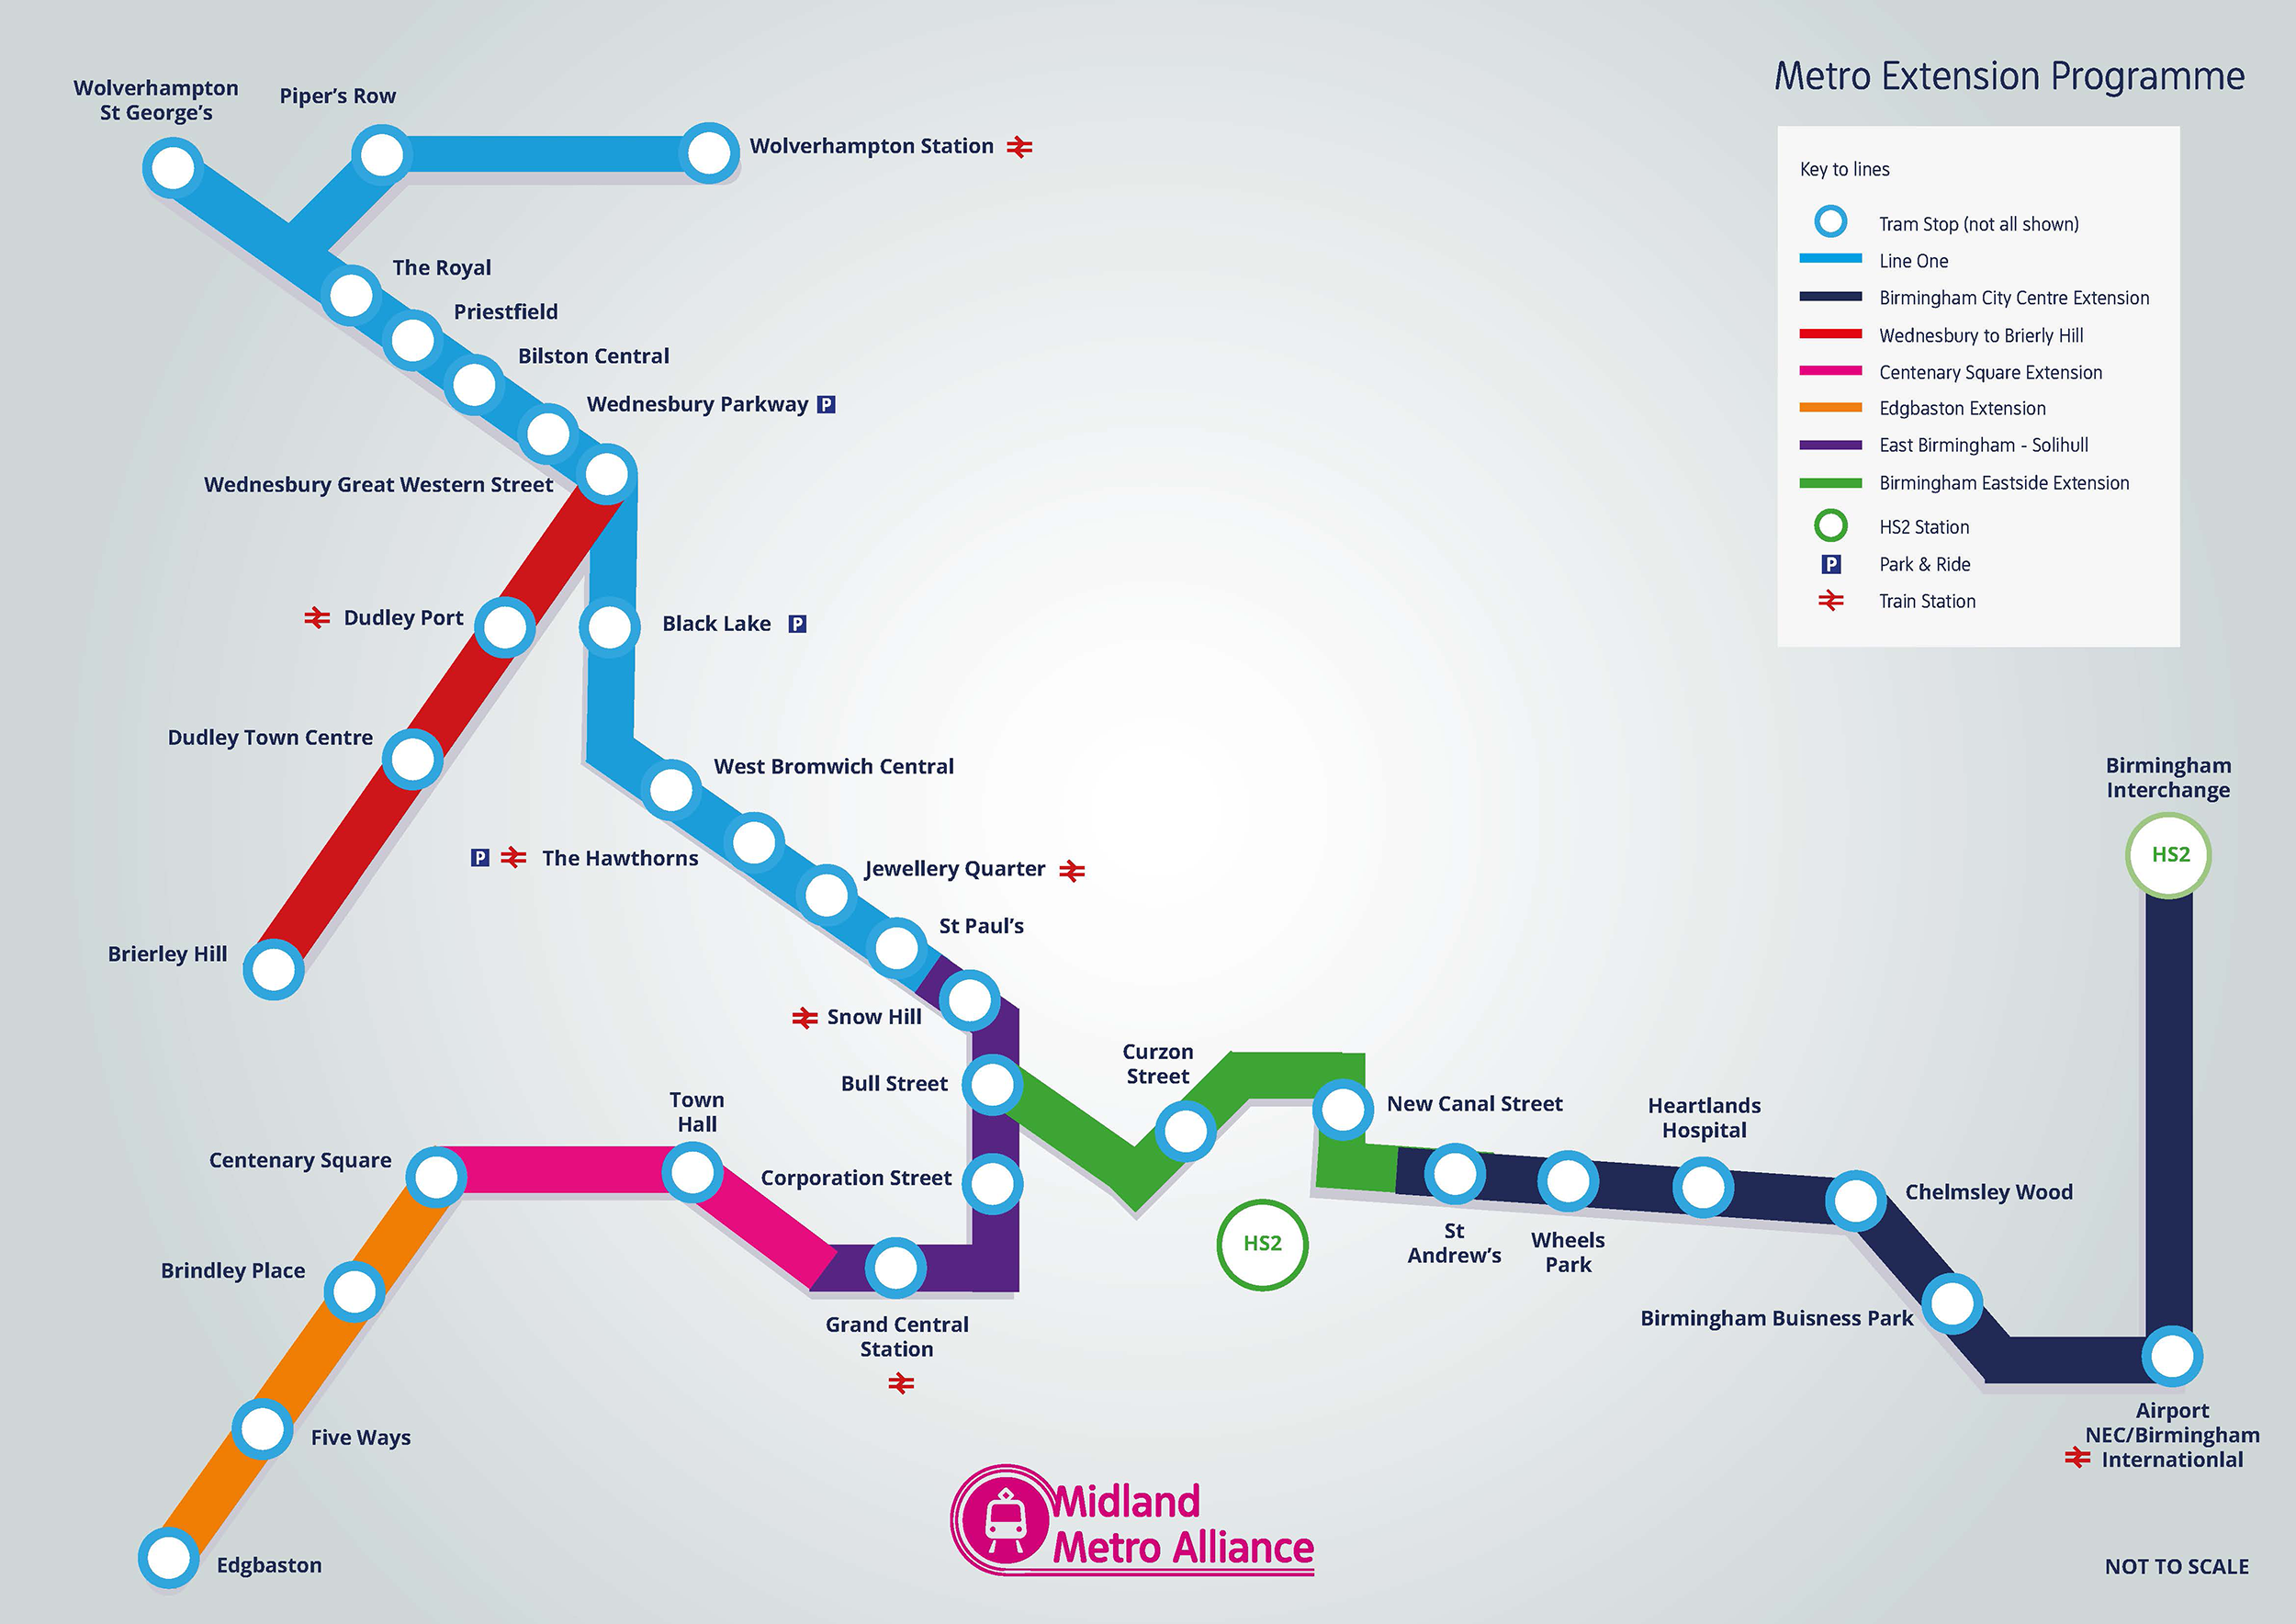 Network West Midlands Metro